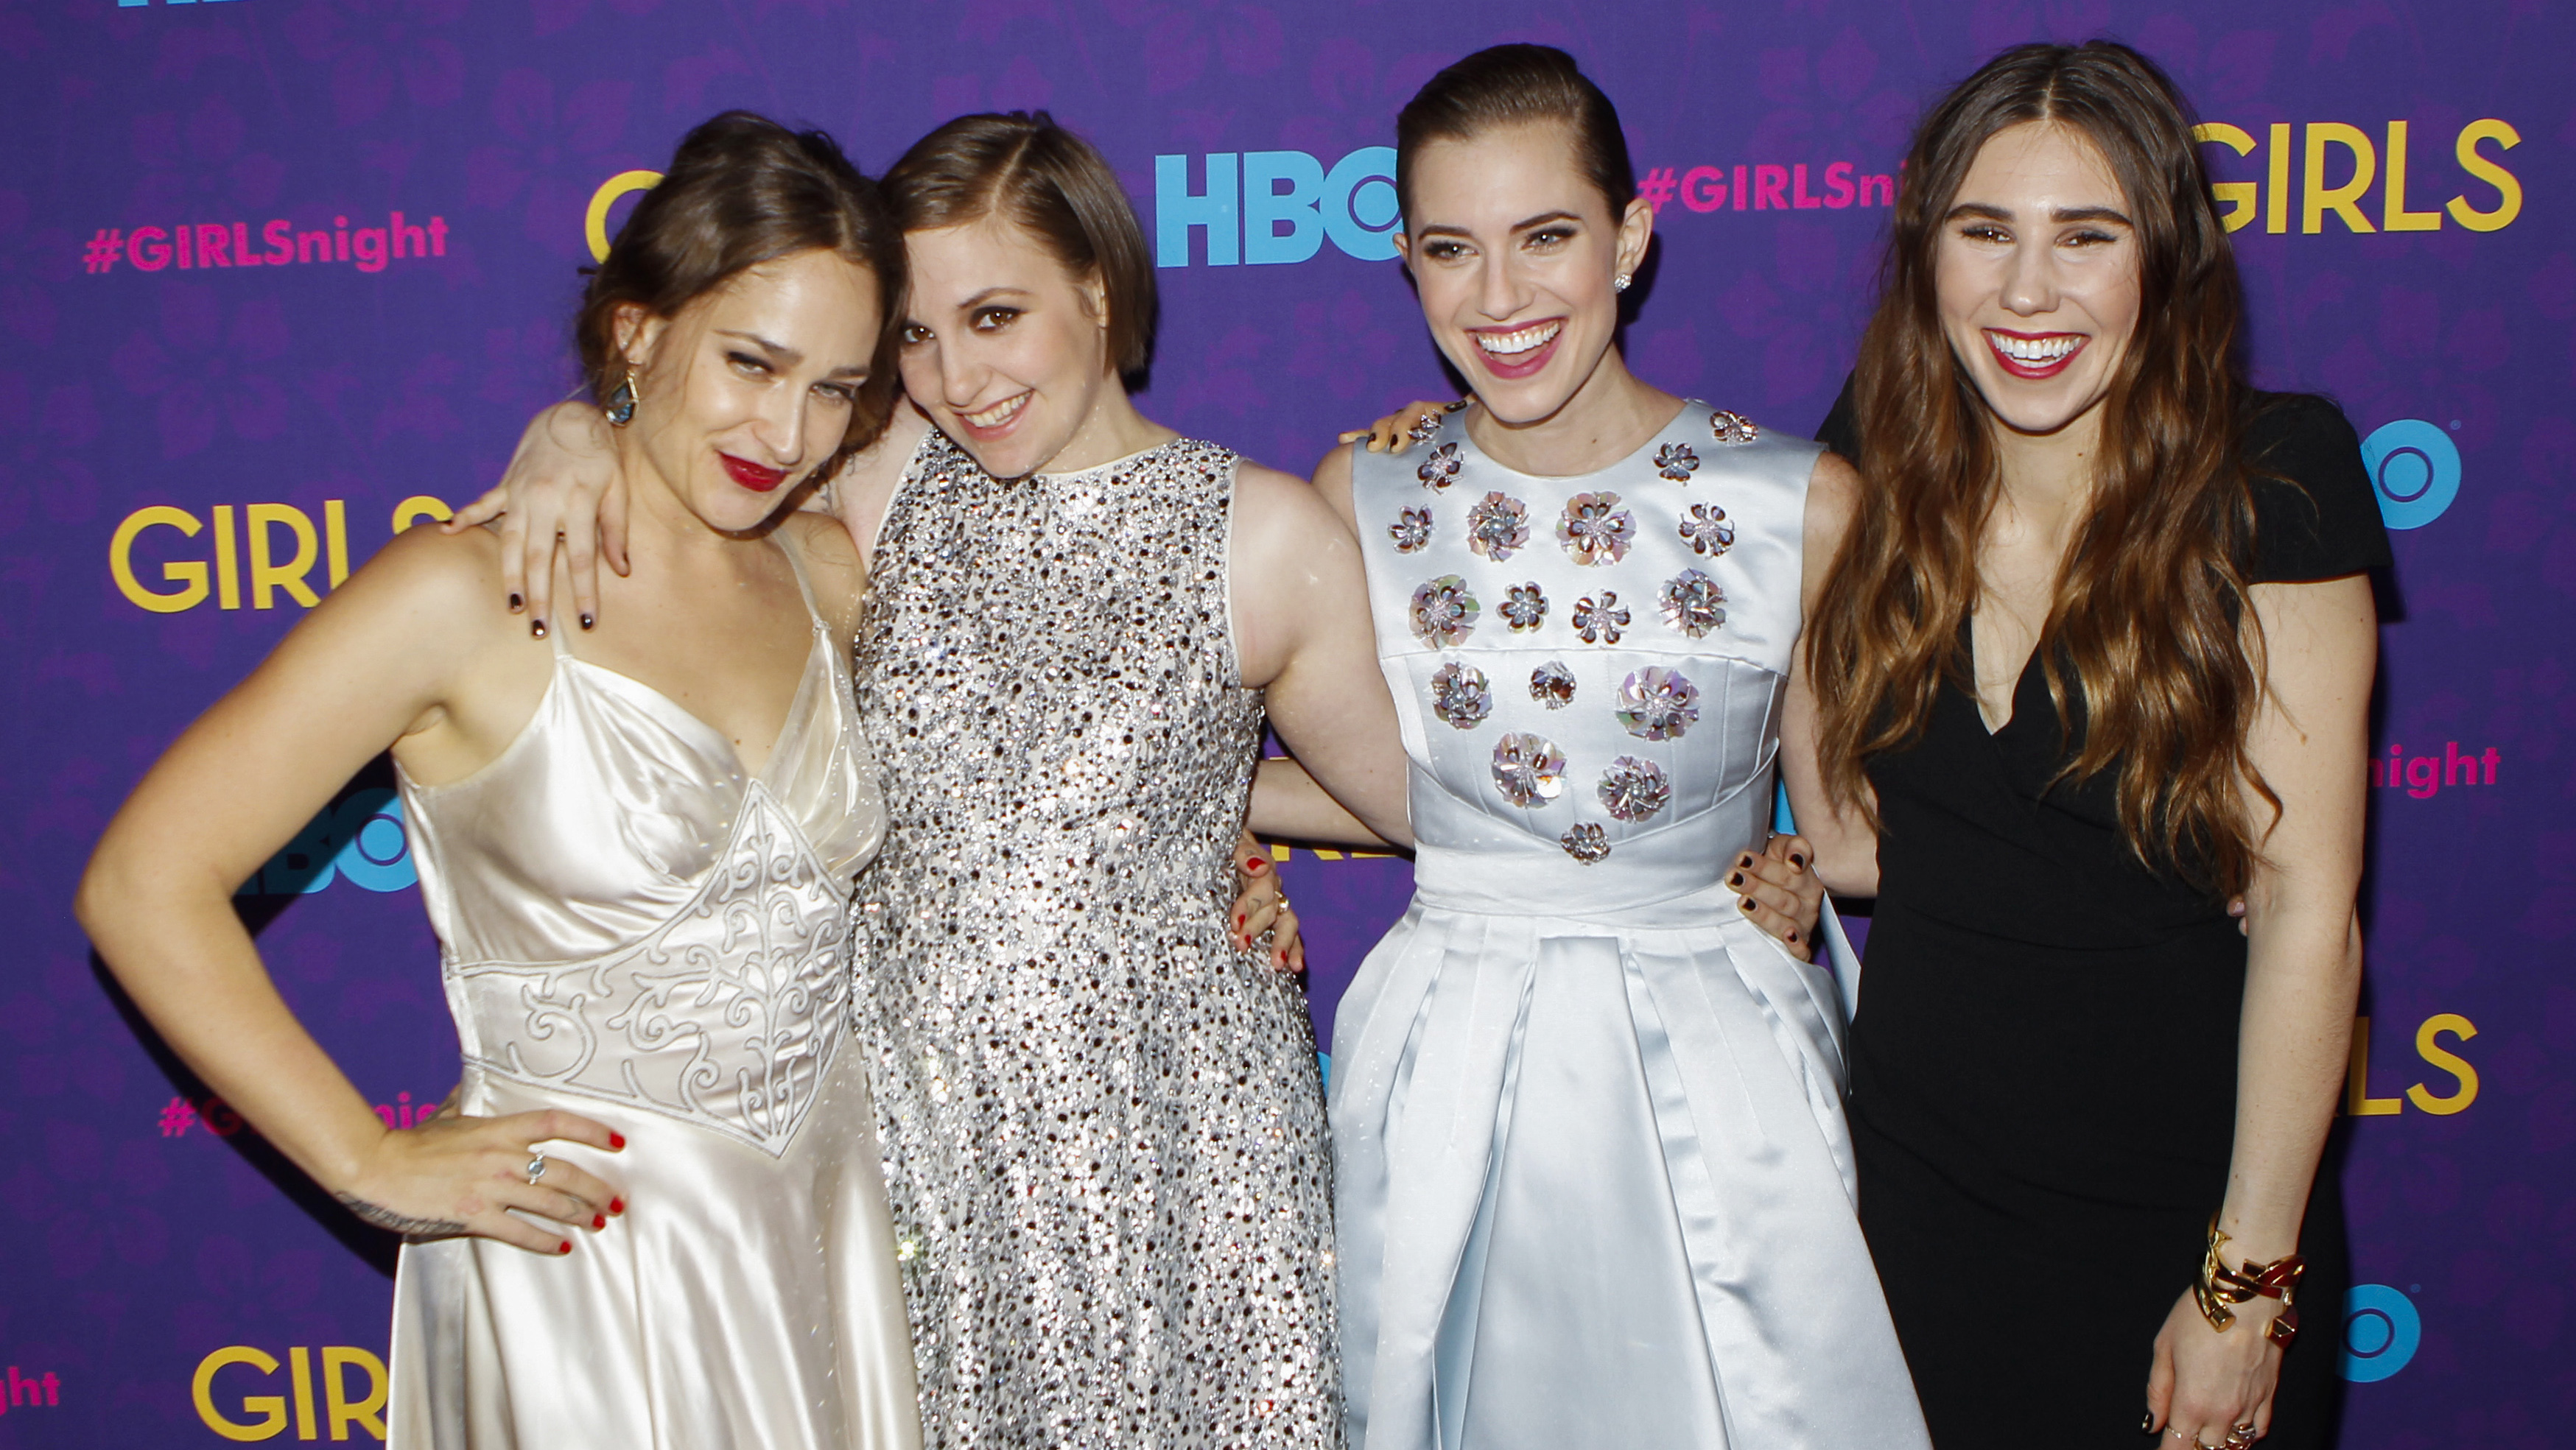 Cast members of the HBO show Girls Jemima Kirke, Lena Dunham, Allison Williams, and Zosia Mamet arrive for the premiere of the third season of the show in New York